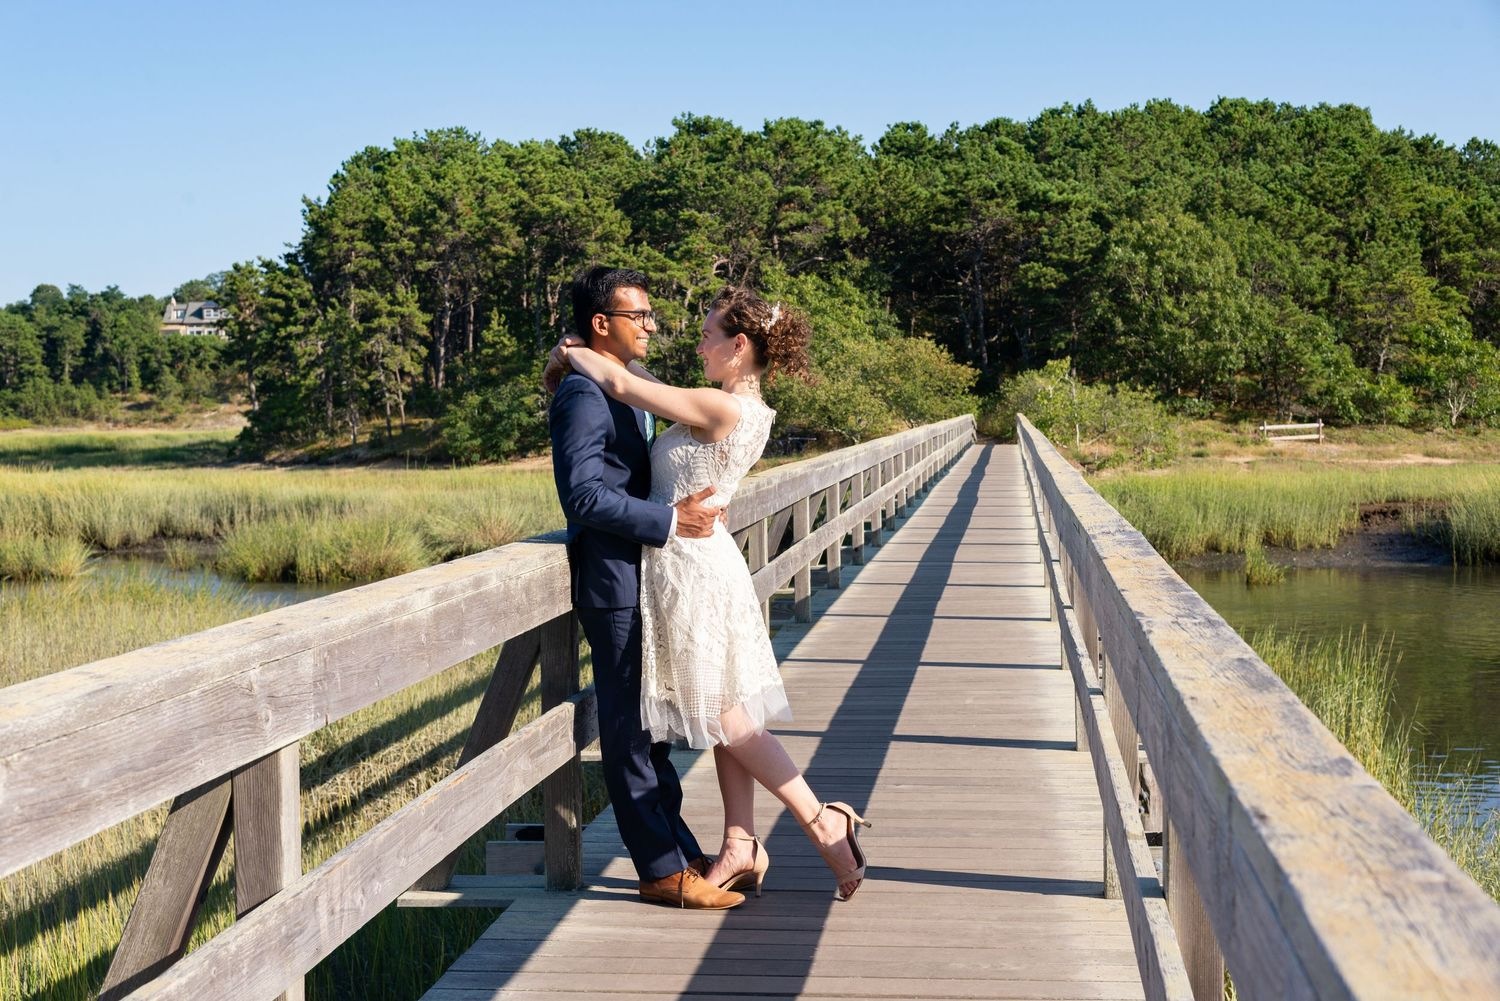 Leah Ramuglia Photography First Look on Uncle Tim's Bridge in Wellfleet, Cape Cod, MA